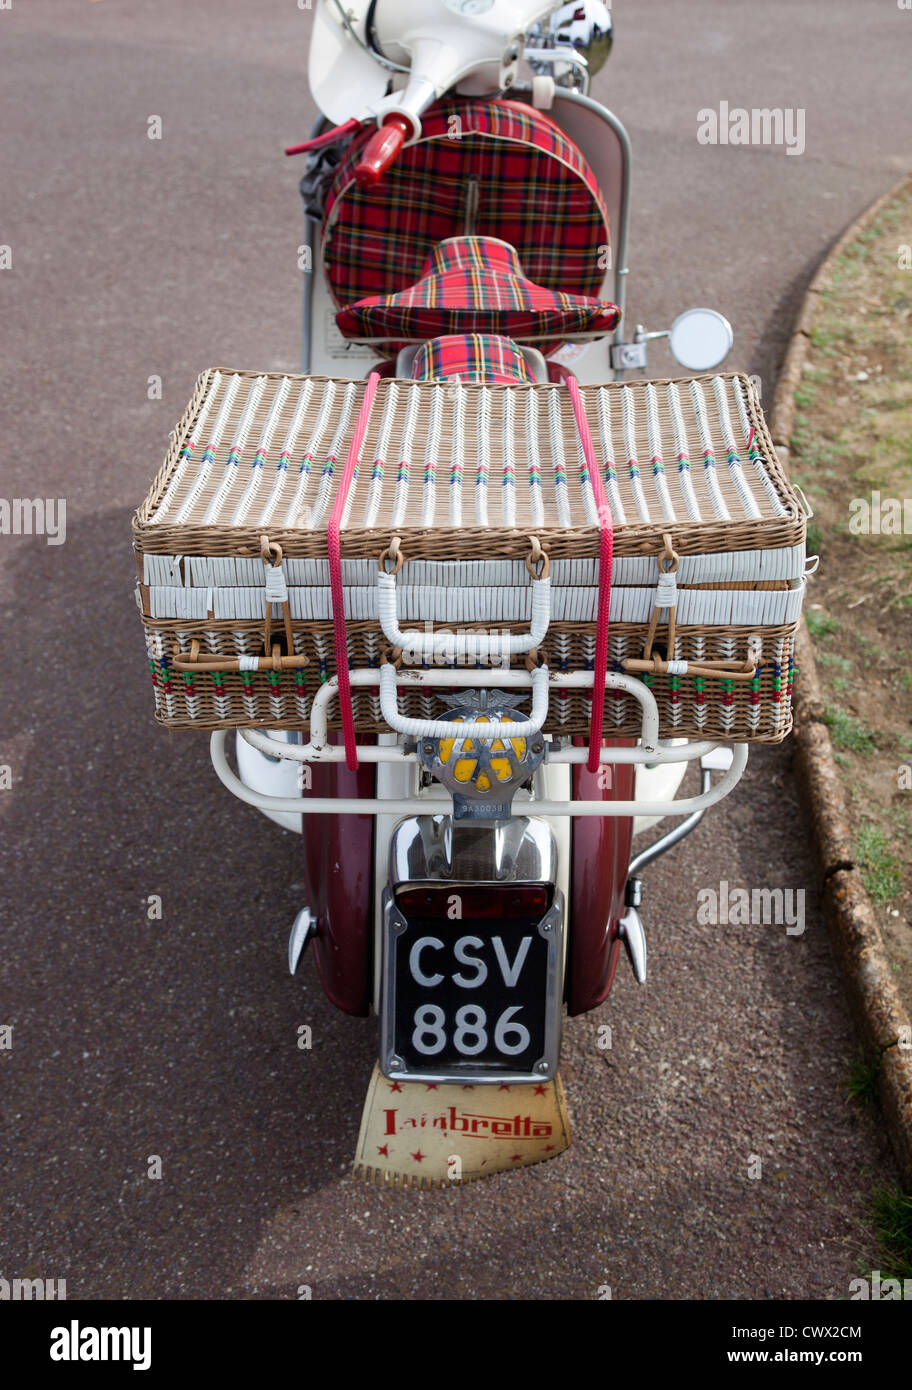 ef130711ac2 Classic Lambretta Scooter with Picnic Basket backbox Stock Photo ...